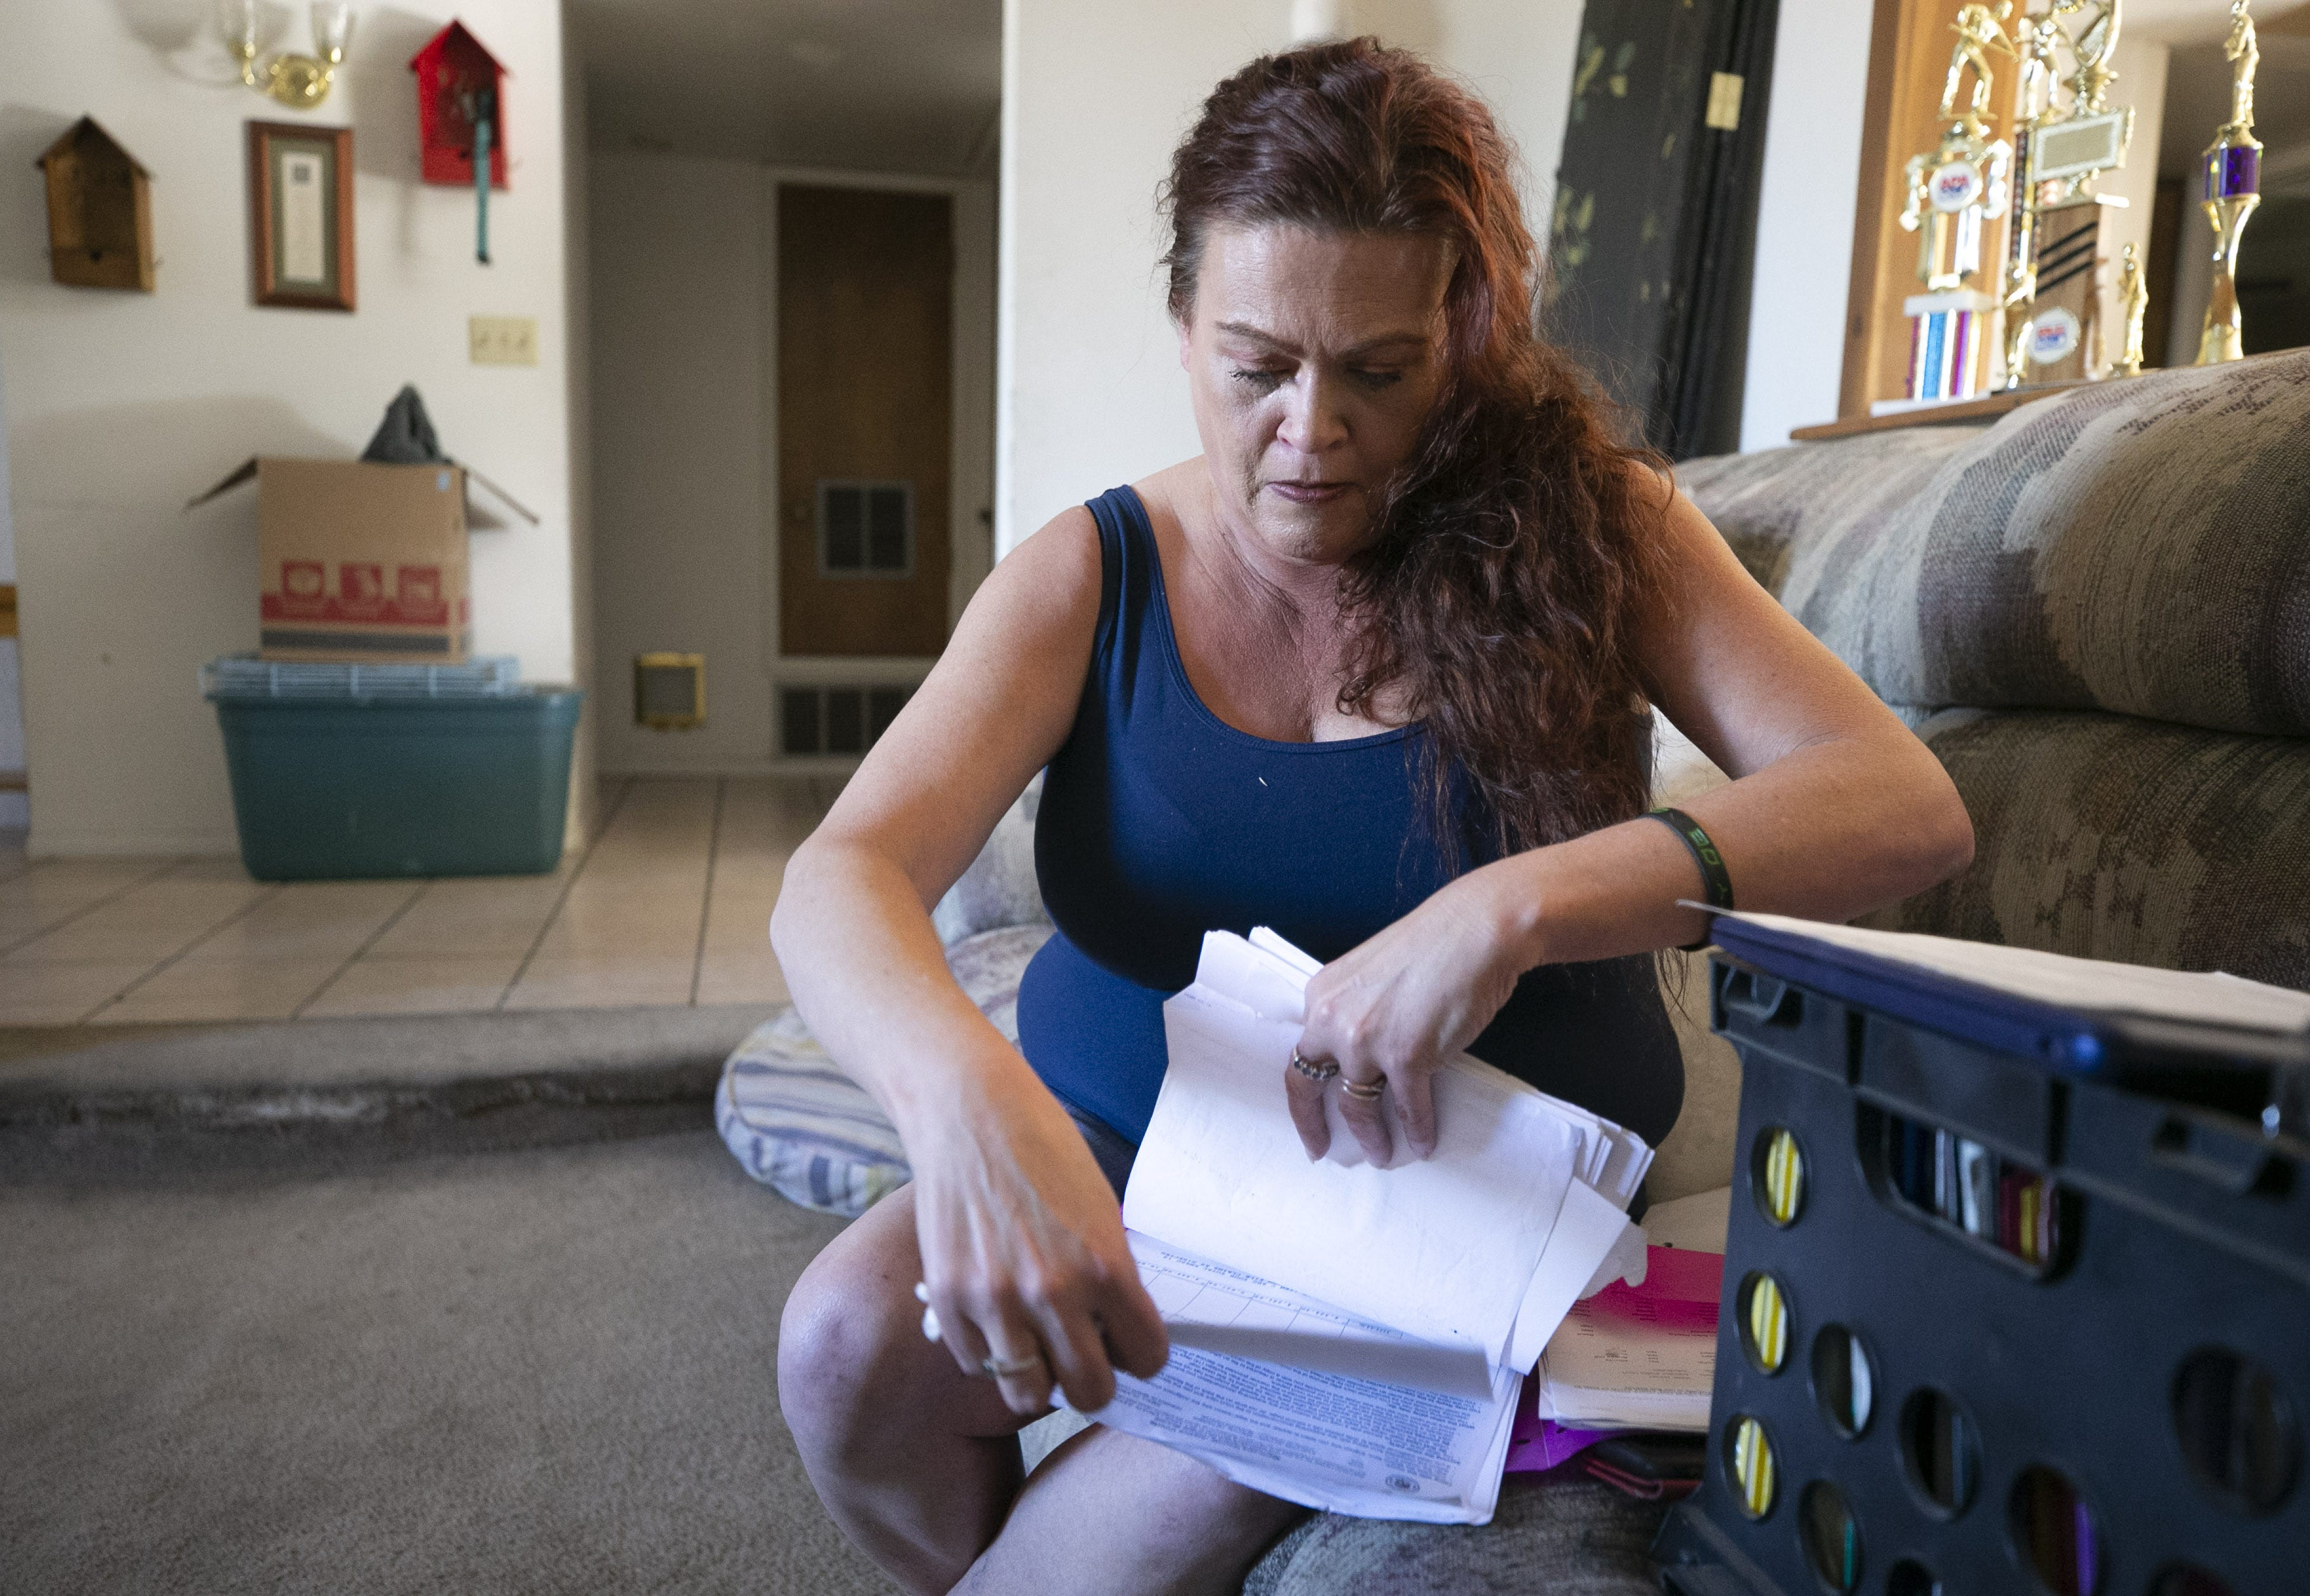 Rental aid can pay for landlords' legal costs. Now renters in eviction can get legal aid.